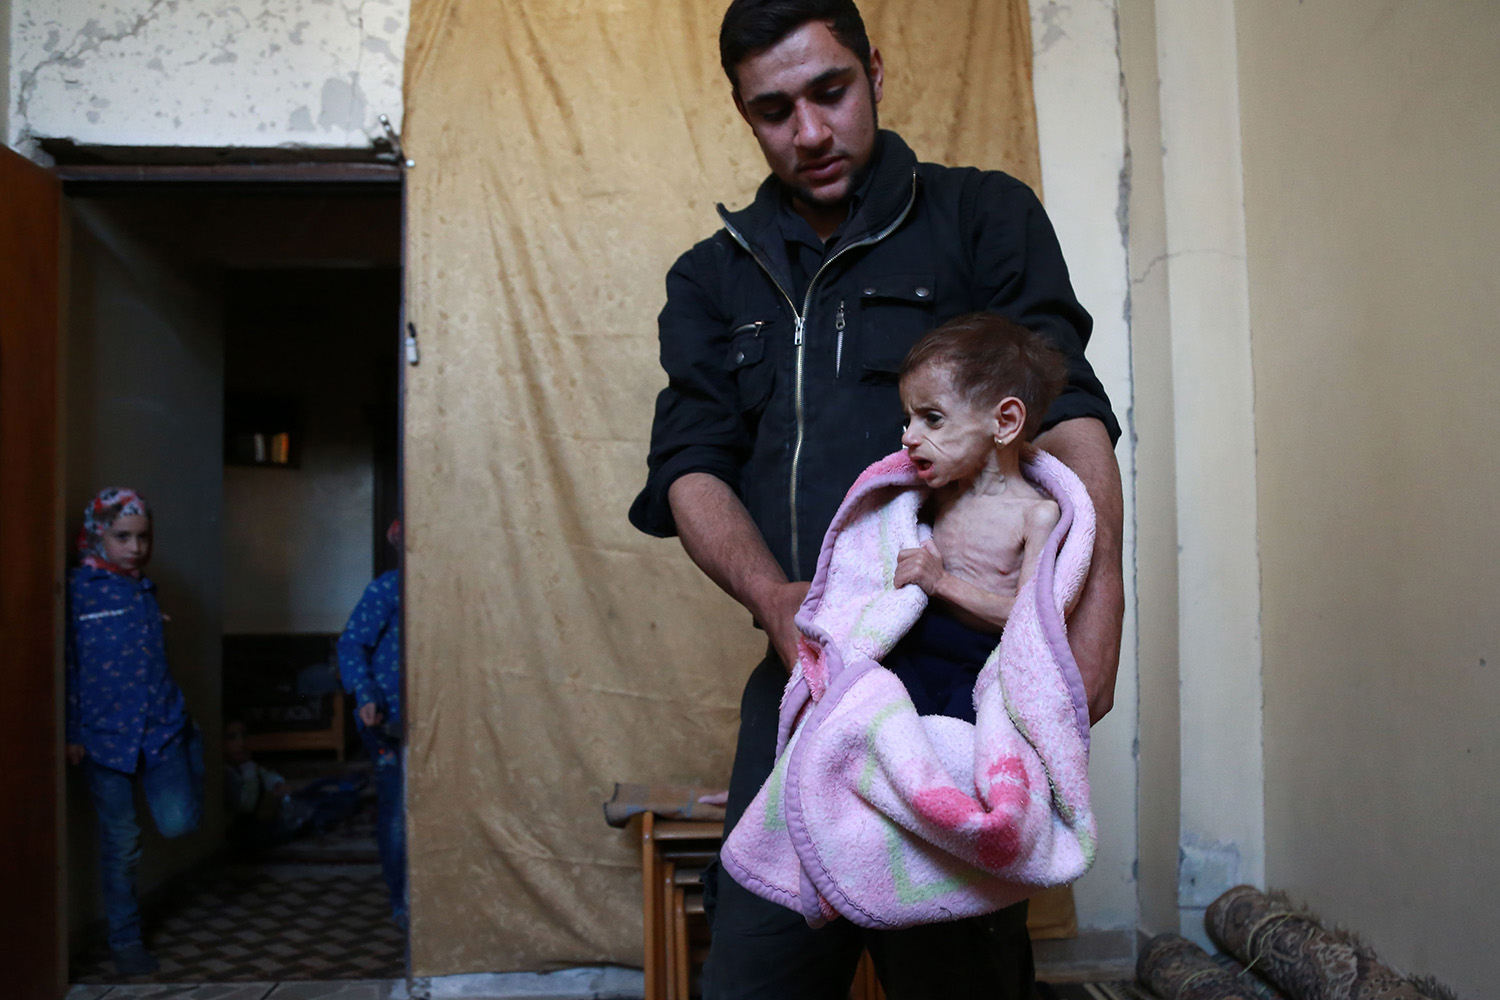 "TOPSHOT - A picture taken on October 25, 2017, shows Hala, a two-year-old girl suffering from the lack of medical care and adequate nourishment, at her home in the rebel-held town of Saqba, in Eastern Ghouta.  Aid agencies warn the situation is worsening, despite an international agreement to implement a ""de-escalation zone"" in the area, which has decreased violence but led to no new access for food, medicine and humanitarian aid. / AFP PHOTO / ABDULMONAM EASSA        (Photo credit should read ABDULMONAM EASSA/AFP/Getty Images)"